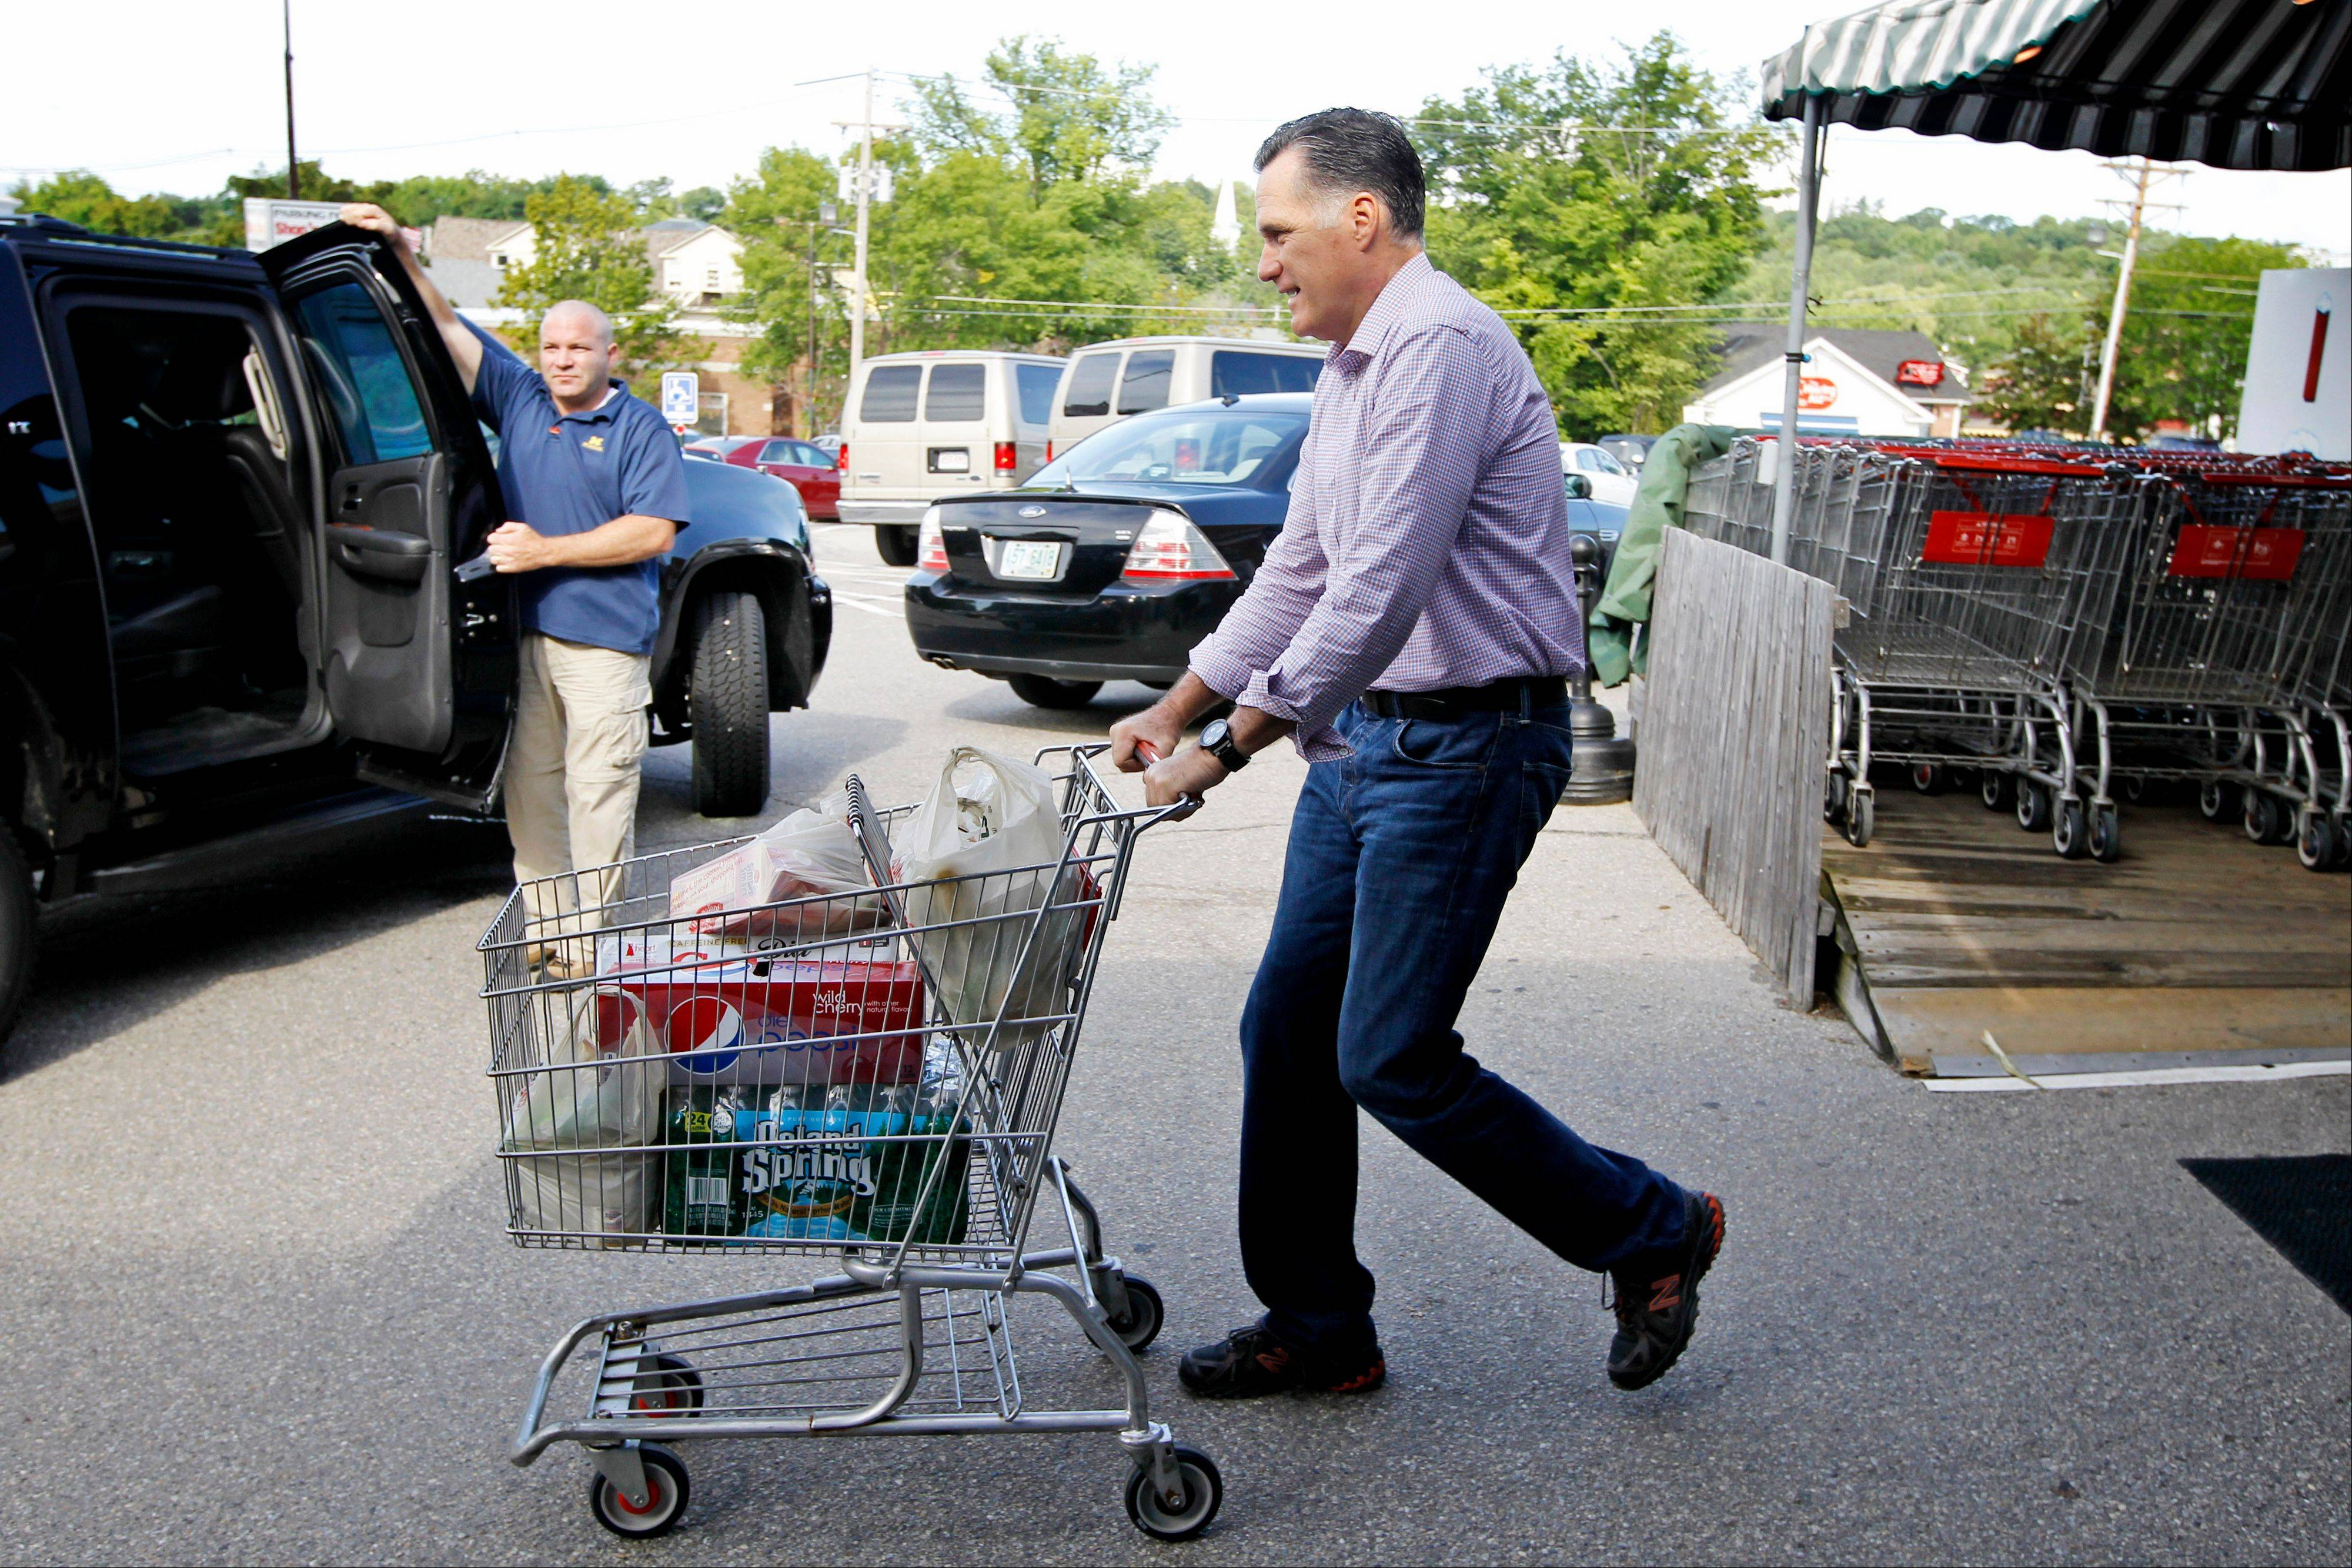 Republican presidential candidate, former Massachusetts Gov. Mitt Romney pushes a shopping cart after buying groceries at Hunter's Shop and Save supermarket in Wolfeboro, N.H., Monday.